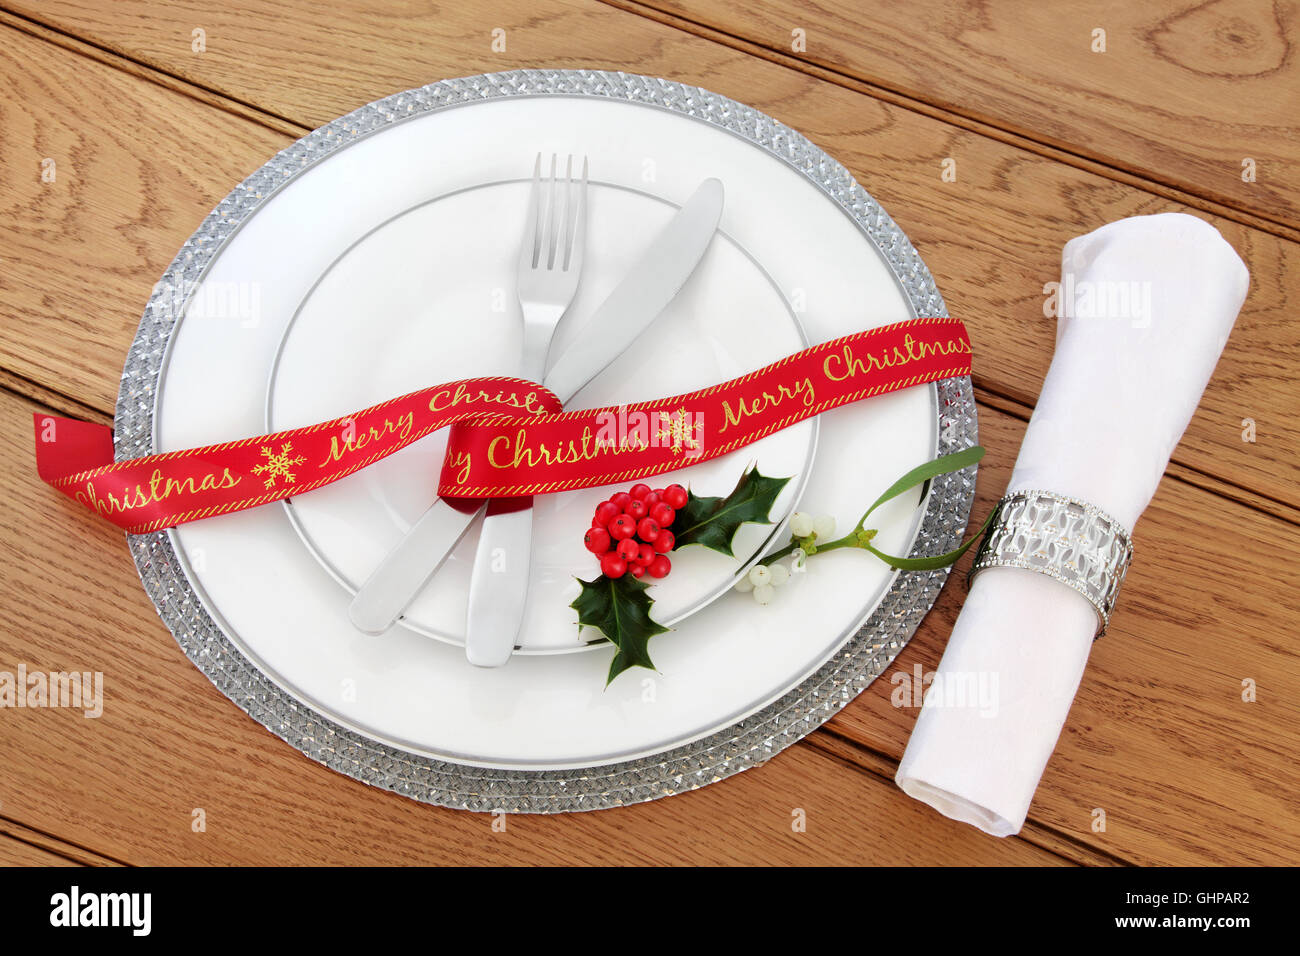 Simple christmas dinner table setting with white porcelain plates red ribbon knife and fork linen serviette and silver ring. & Simple christmas dinner table setting with white porcelain plates ...